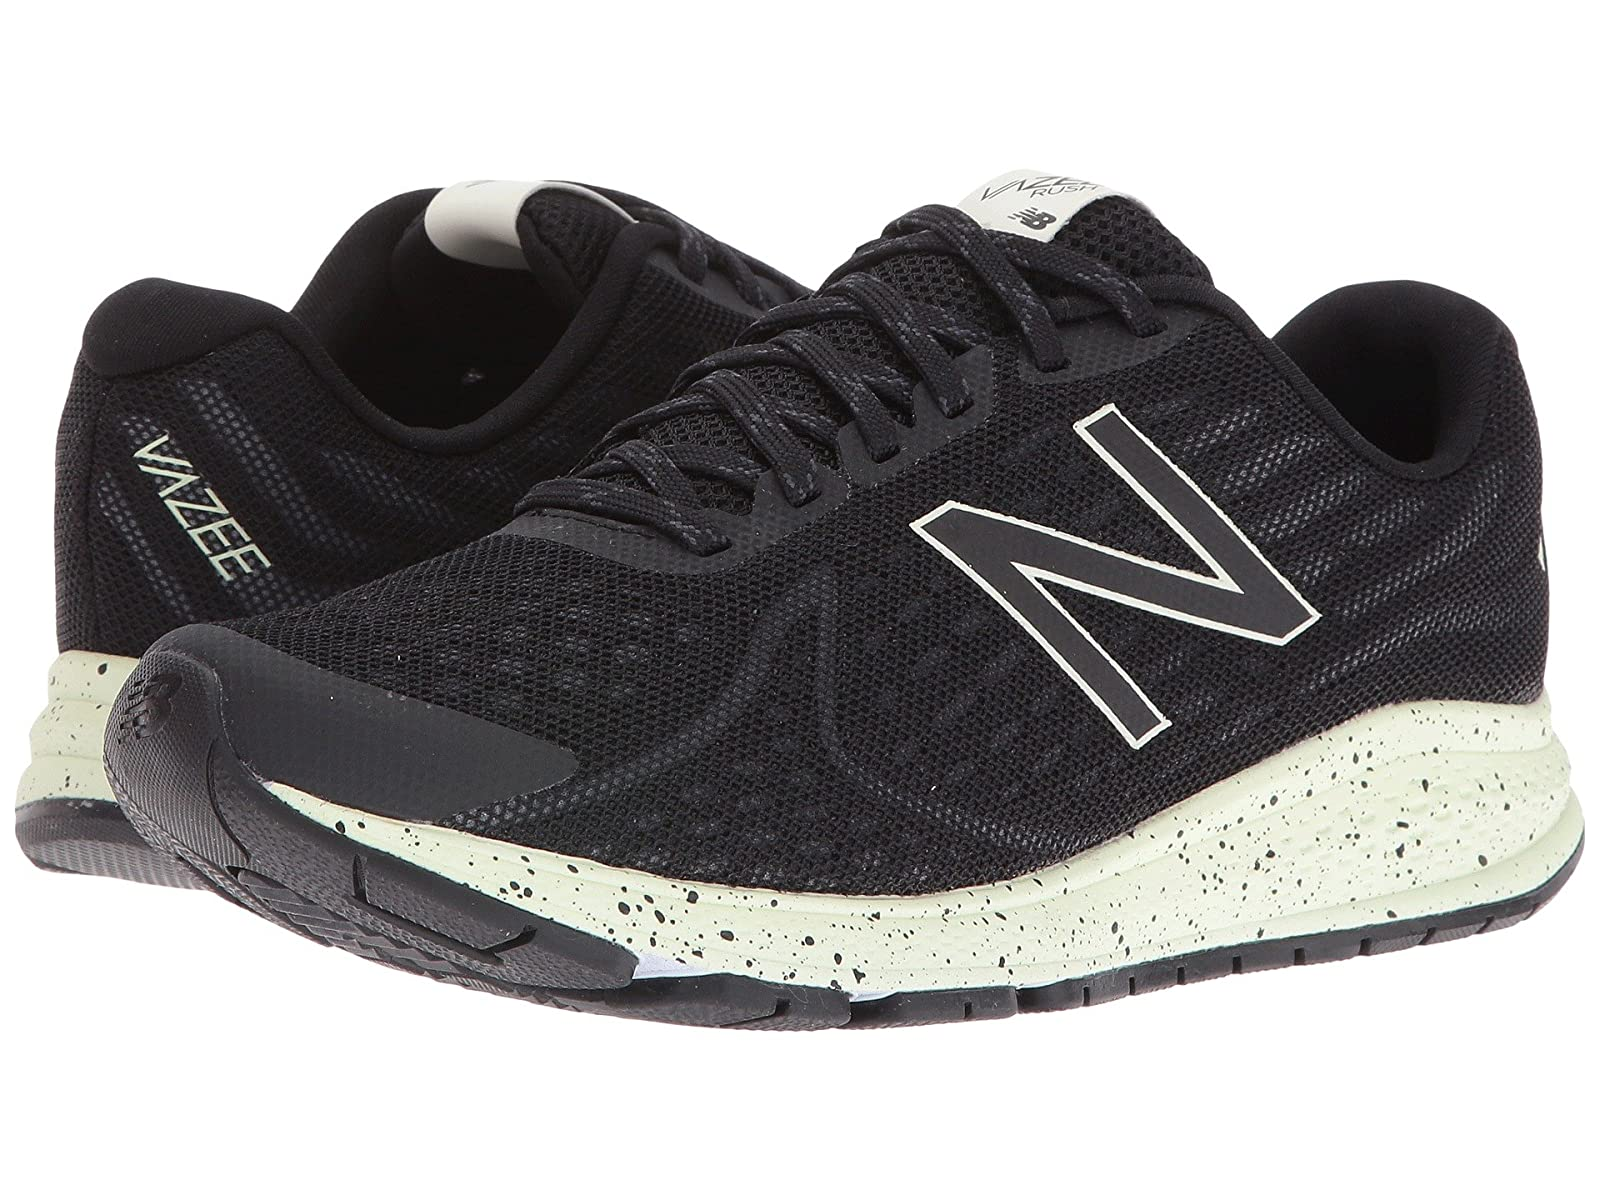 New Balance Vazee Rush v2 Protect PackCheap and distinctive eye-catching shoes